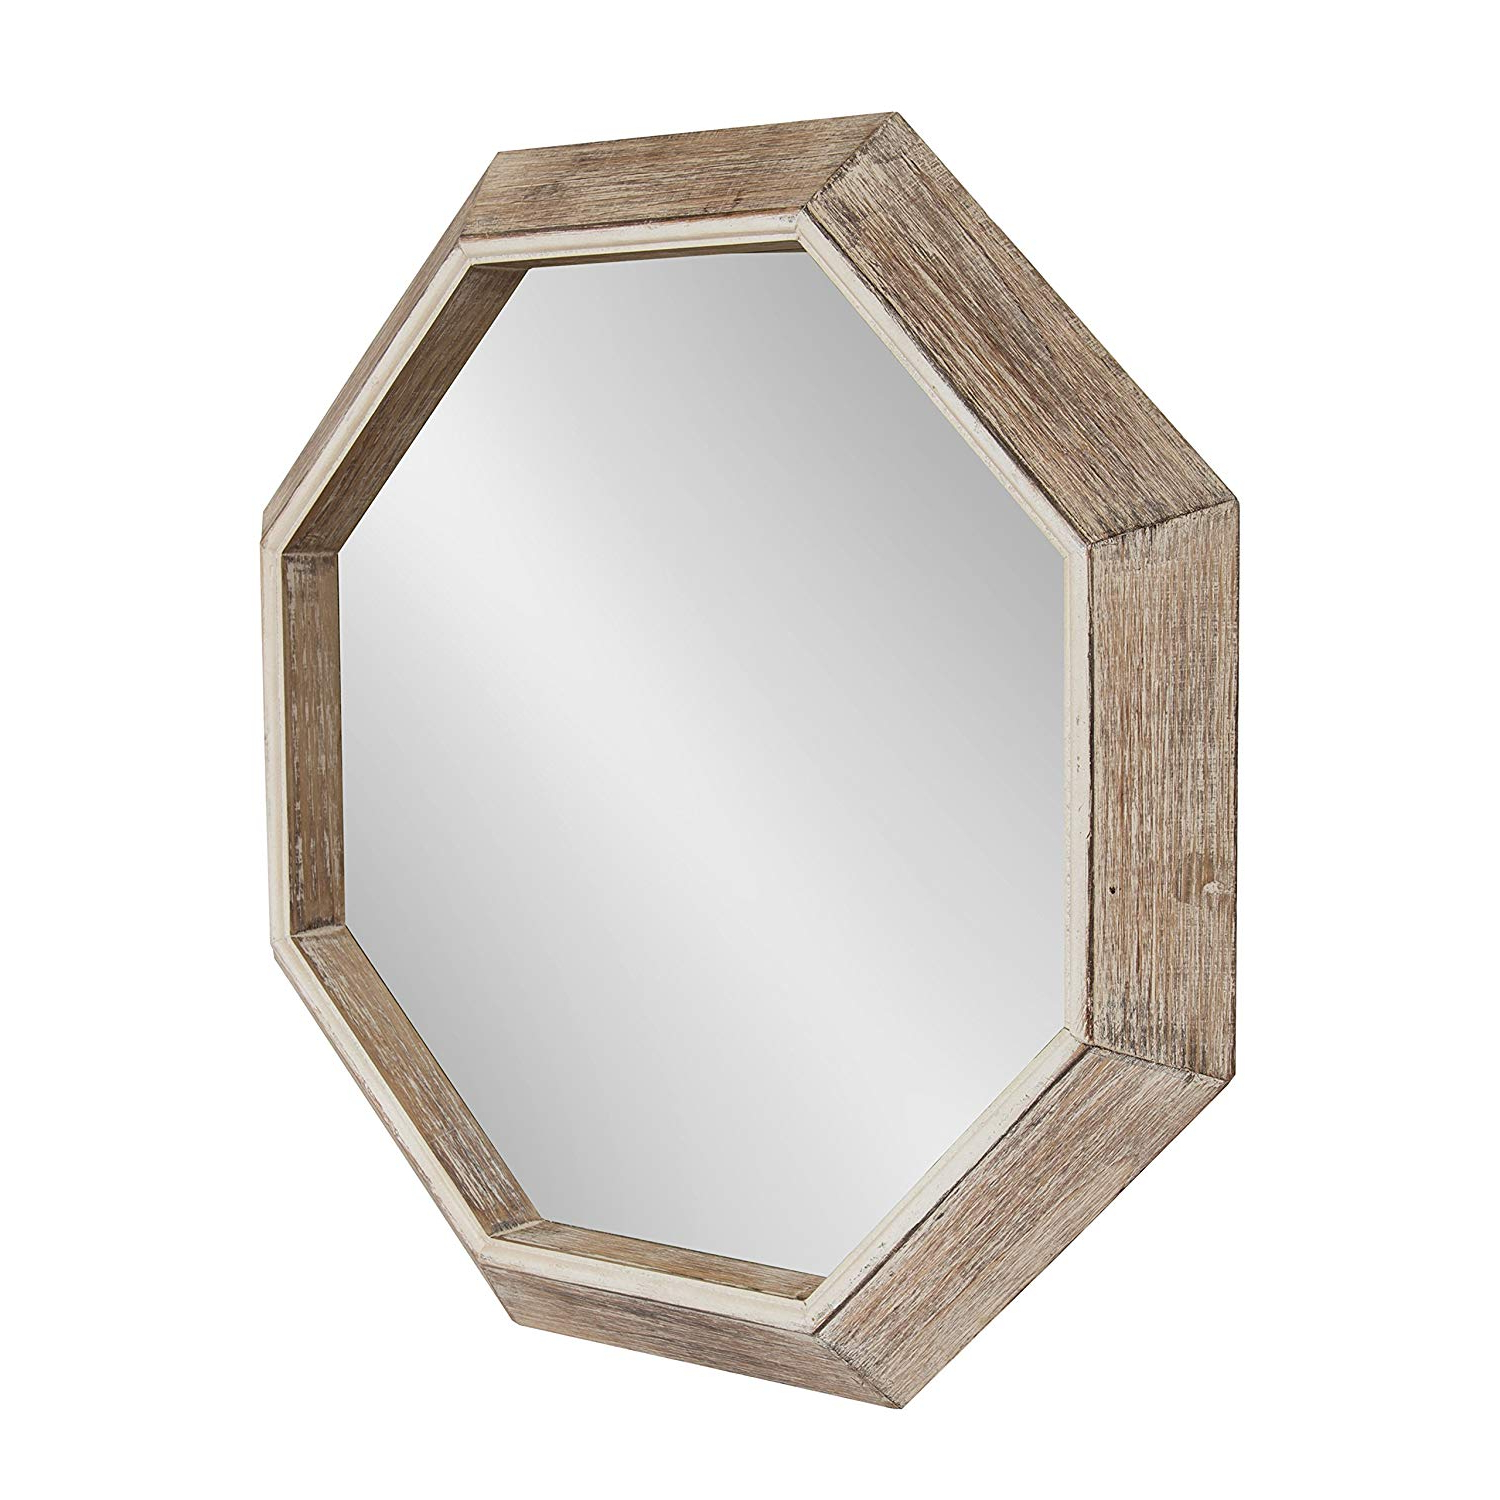 Large Wooden Wall Mirrors Pertaining To Most Recently Released Kate And Laurel Yves Large Rustic Wooden Octagon Wall Mirror, White, 30 X (View 8 of 20)